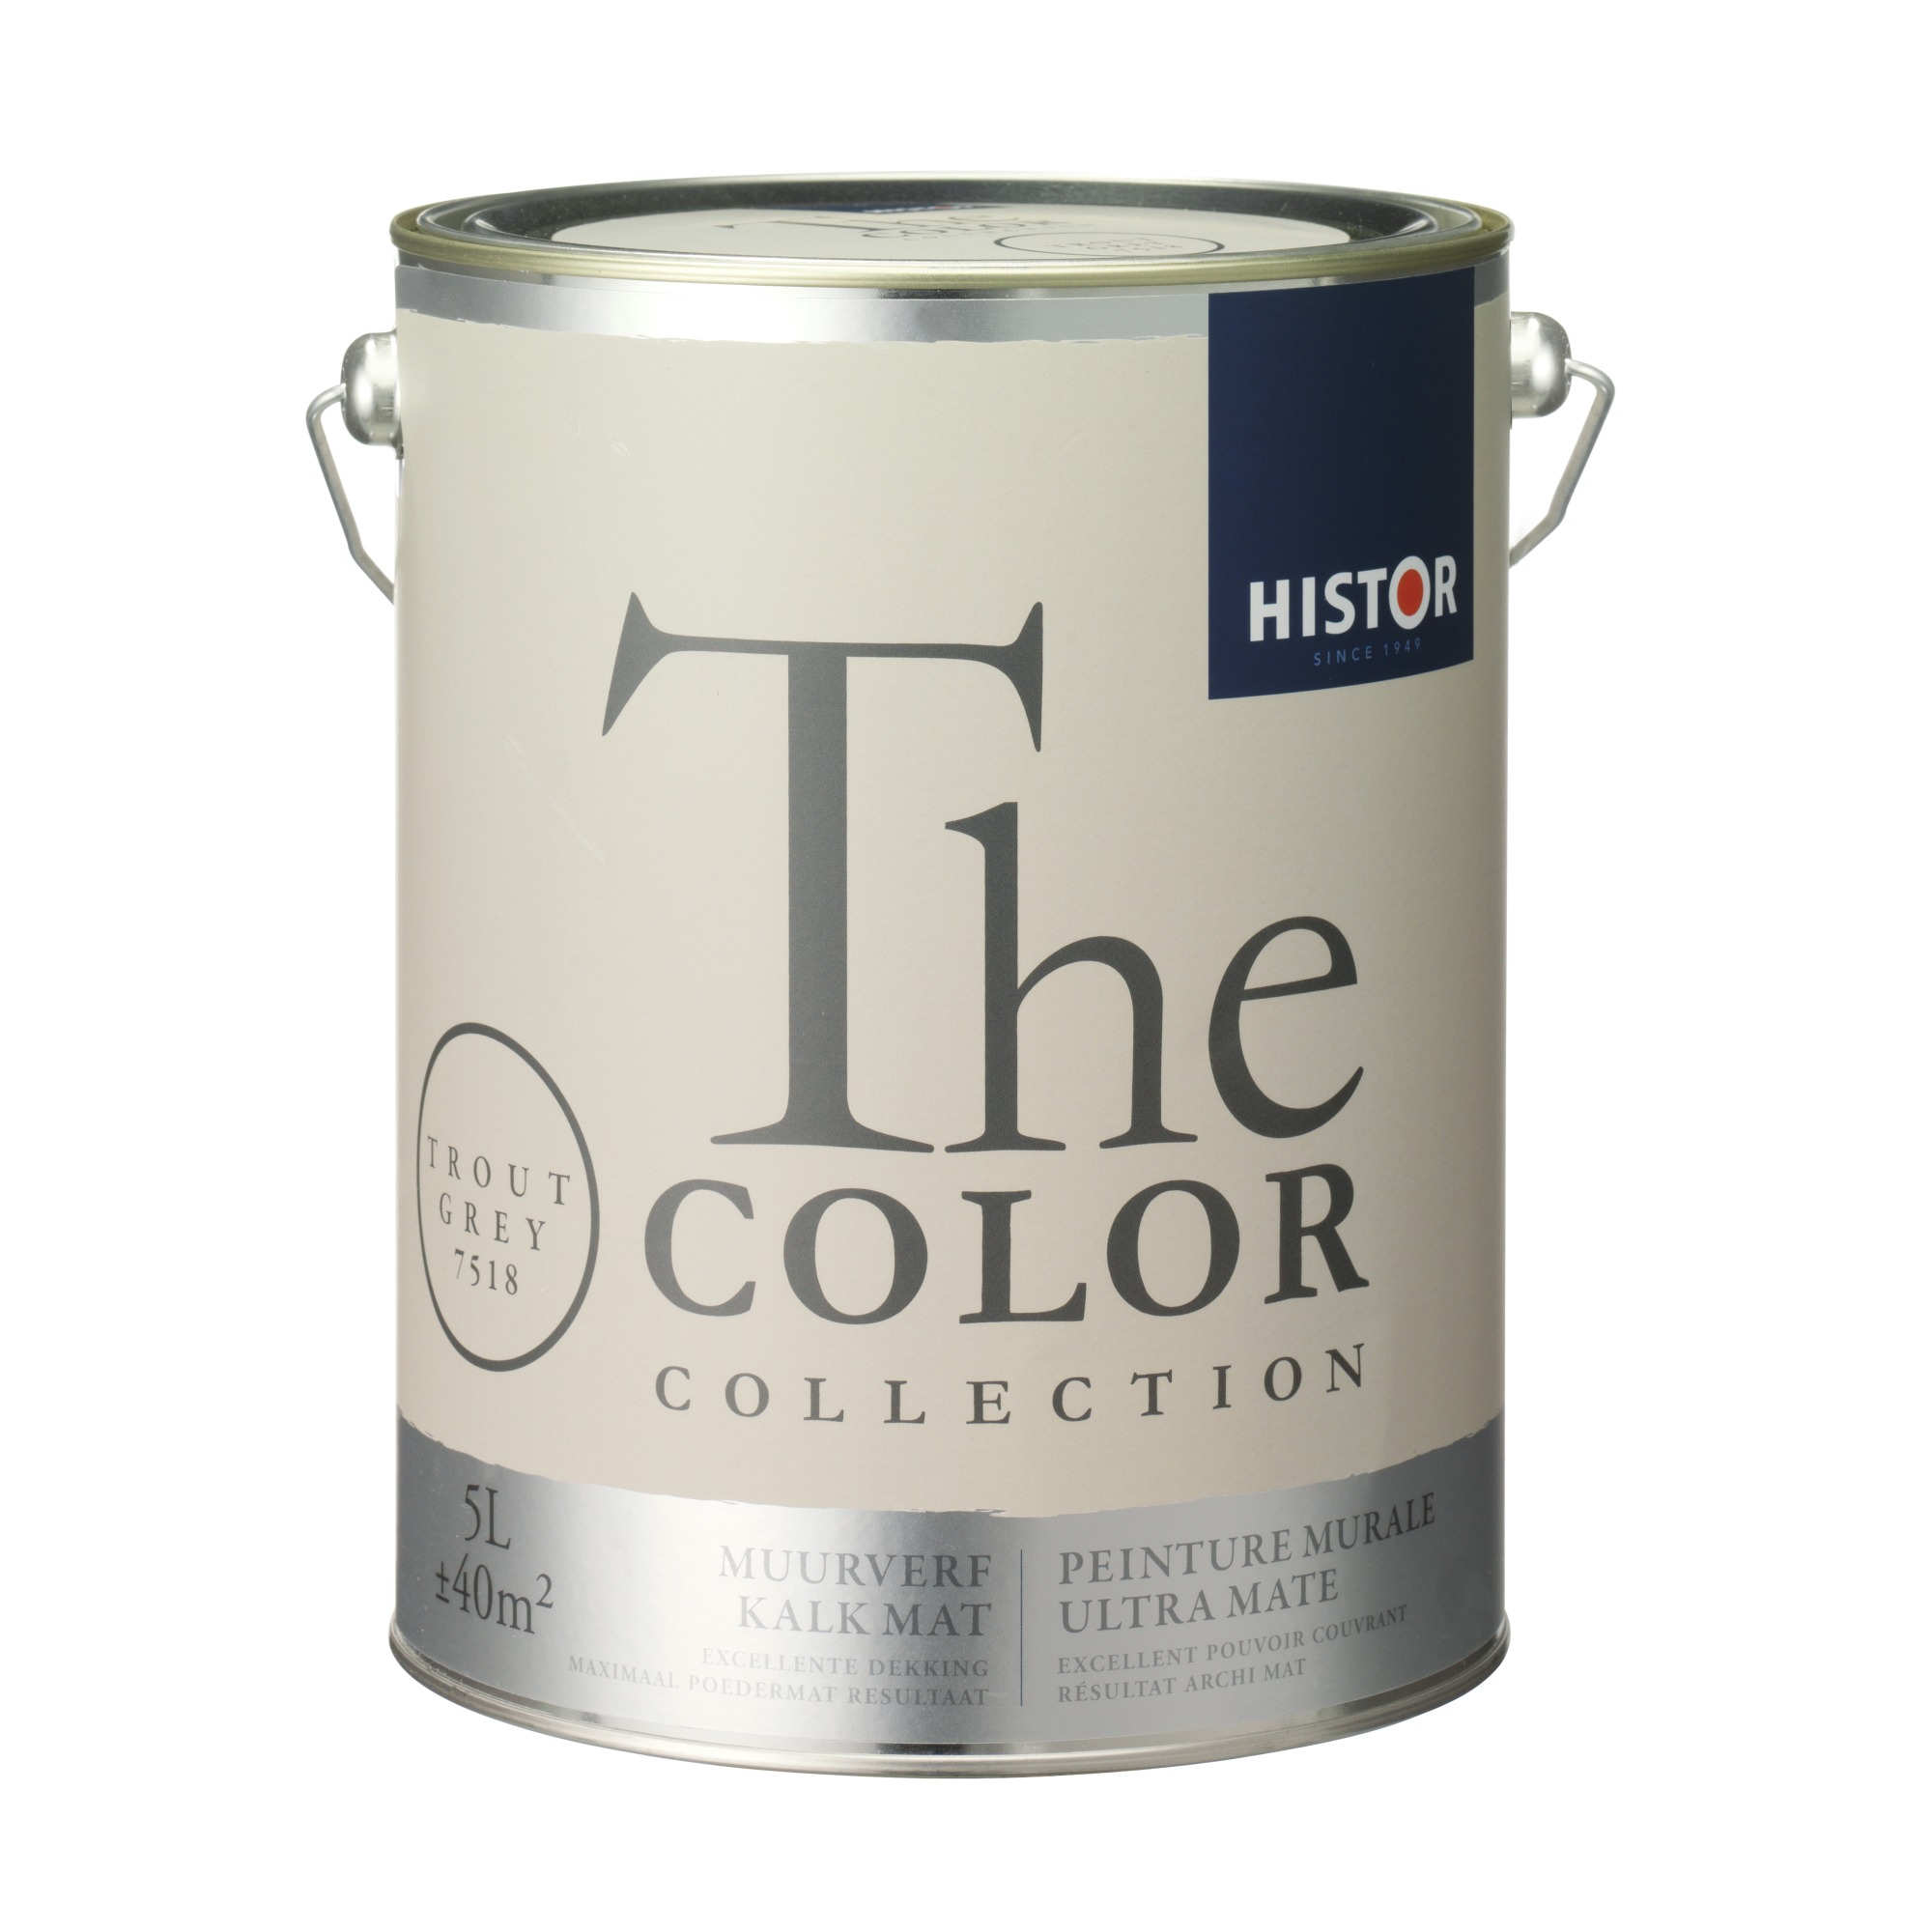 Kleur Forel Histor Histor The Color Collection Muurverf Trout Grey 5 Liter